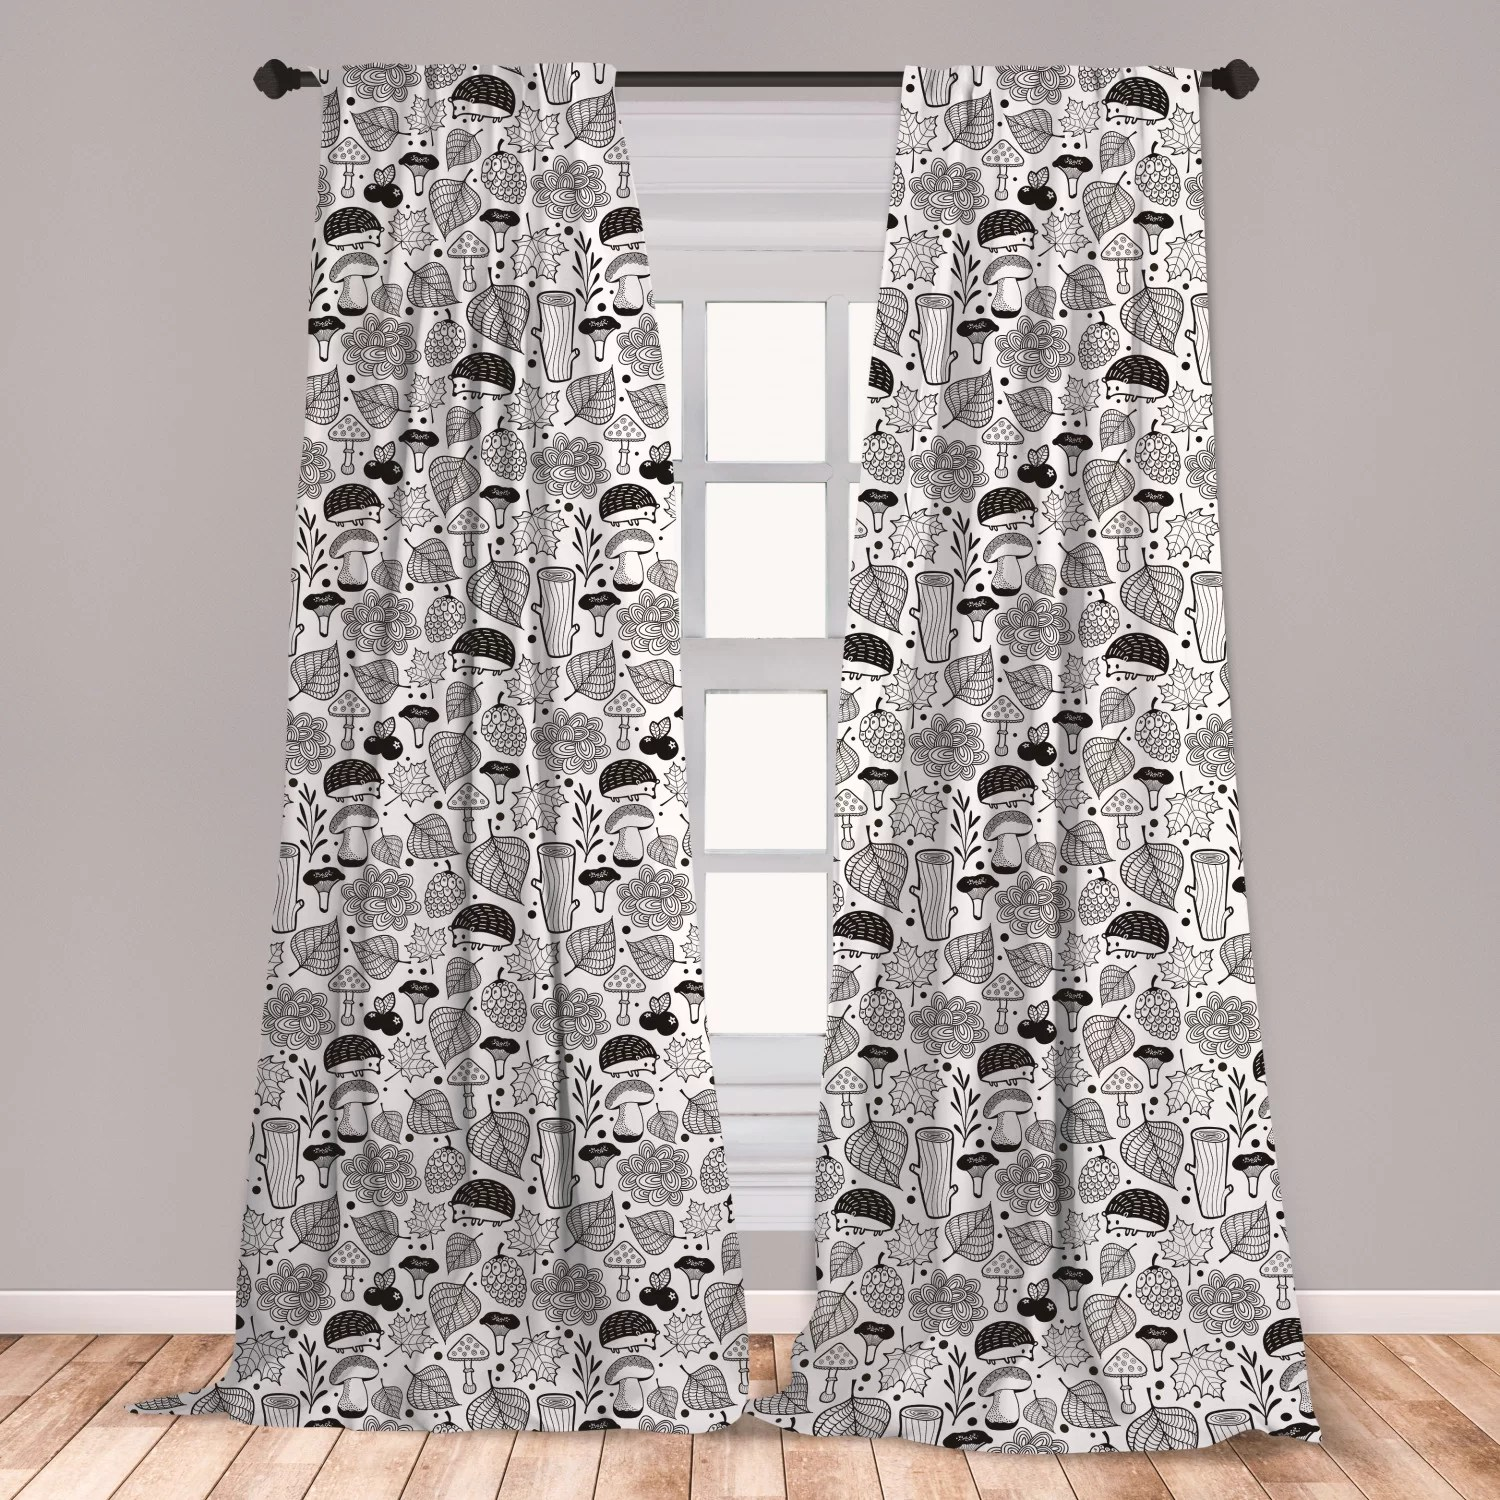 $24 window curtains for bedroom,black pattern for bedroom l 63 x w 5 home kitchen home dã â©cor products window treatments East Urban Home Ambesonne Hedgehog Curtains Ecological Nature Elements Woodland Pattern Black And White Doodle Composition Window Treatments 2 Panel Set For Living Room Bedroom Decor 56 X 63 Black White Wayfair